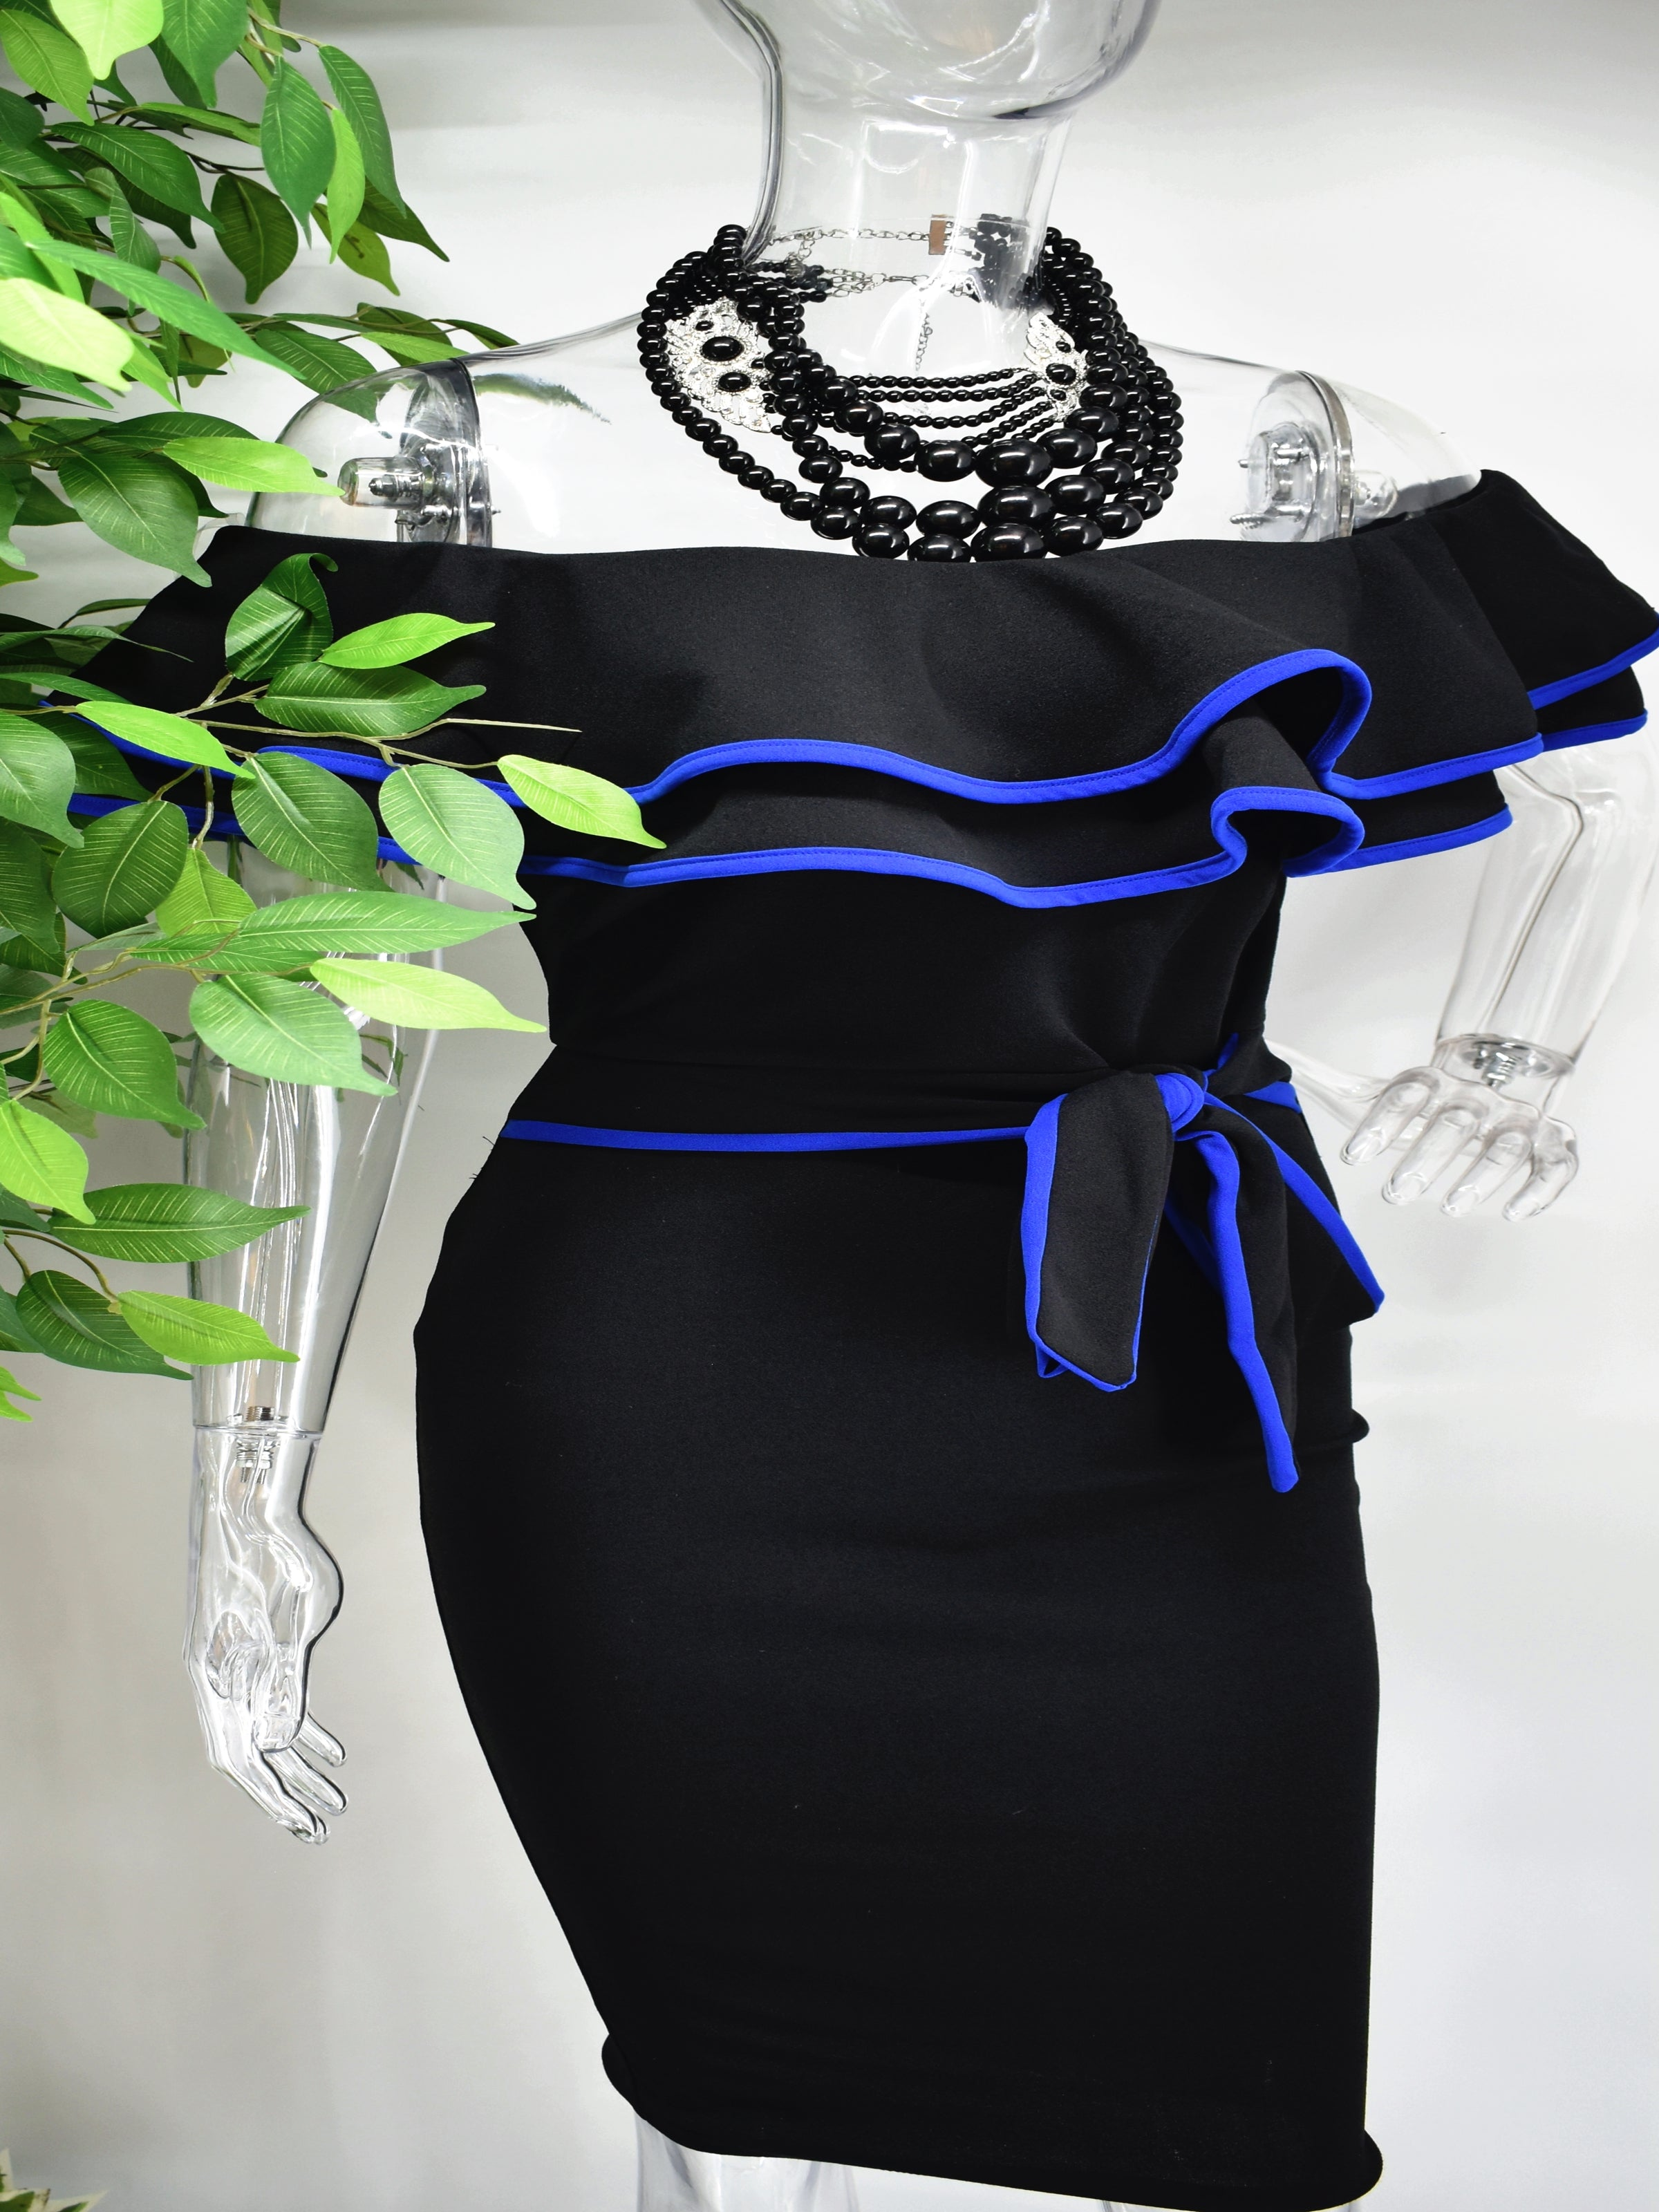 Our Berdine Black Midi Dress is picture perfect with its off the shoulder ruffled neckline and fitted bodice. The ruffled neckline and belted waist is piped with a beautiful blue.